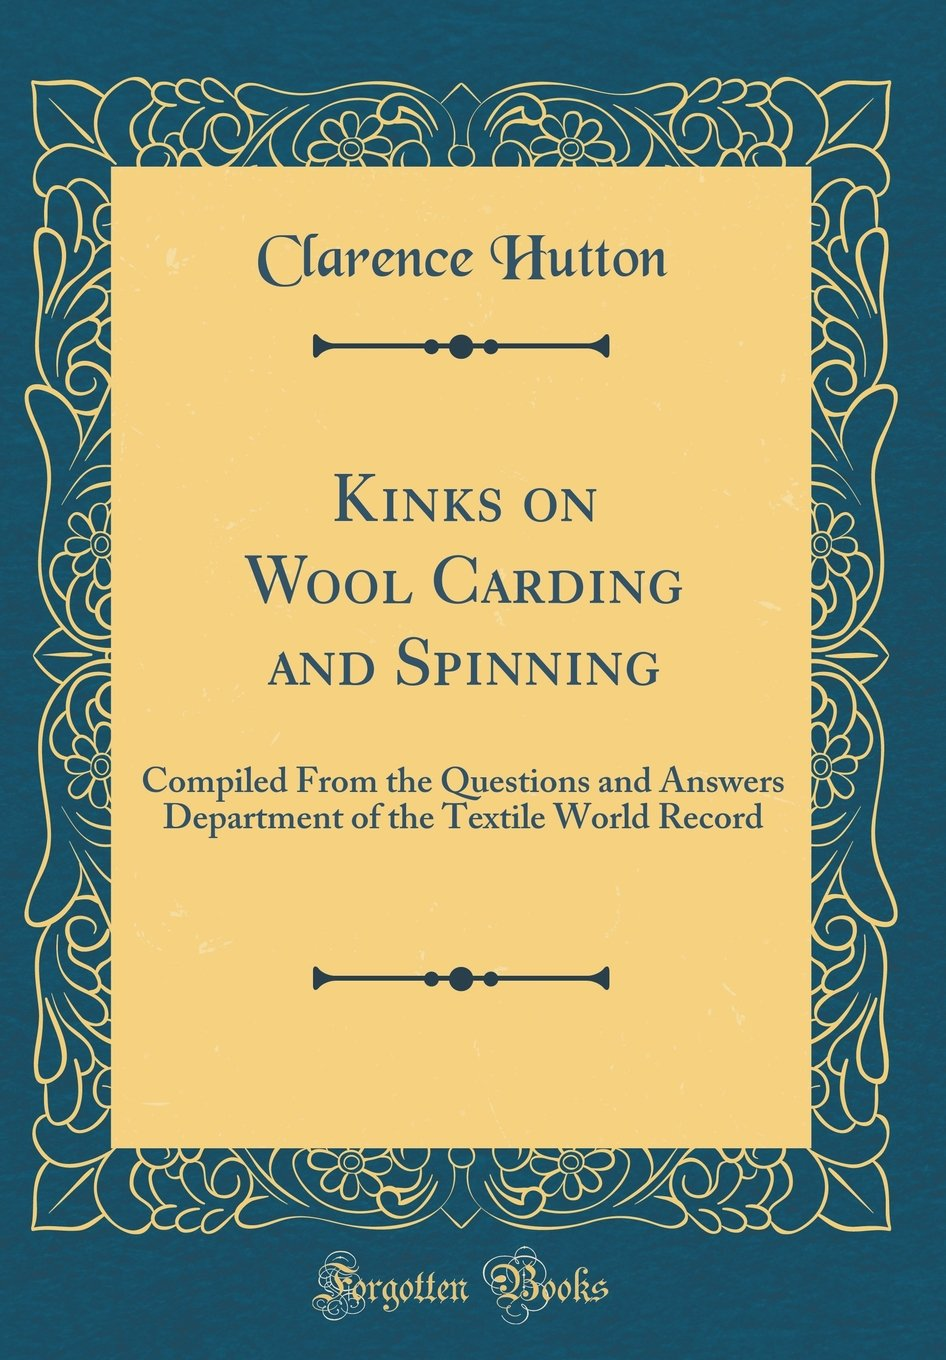 Kinks on Wool Carding and Spinning: Compiled From the Questions and Answers Department of the Textile World Record Classic Reprint: Amazon.es: Hutton, Clarence: Libros en idiomas extranjeros